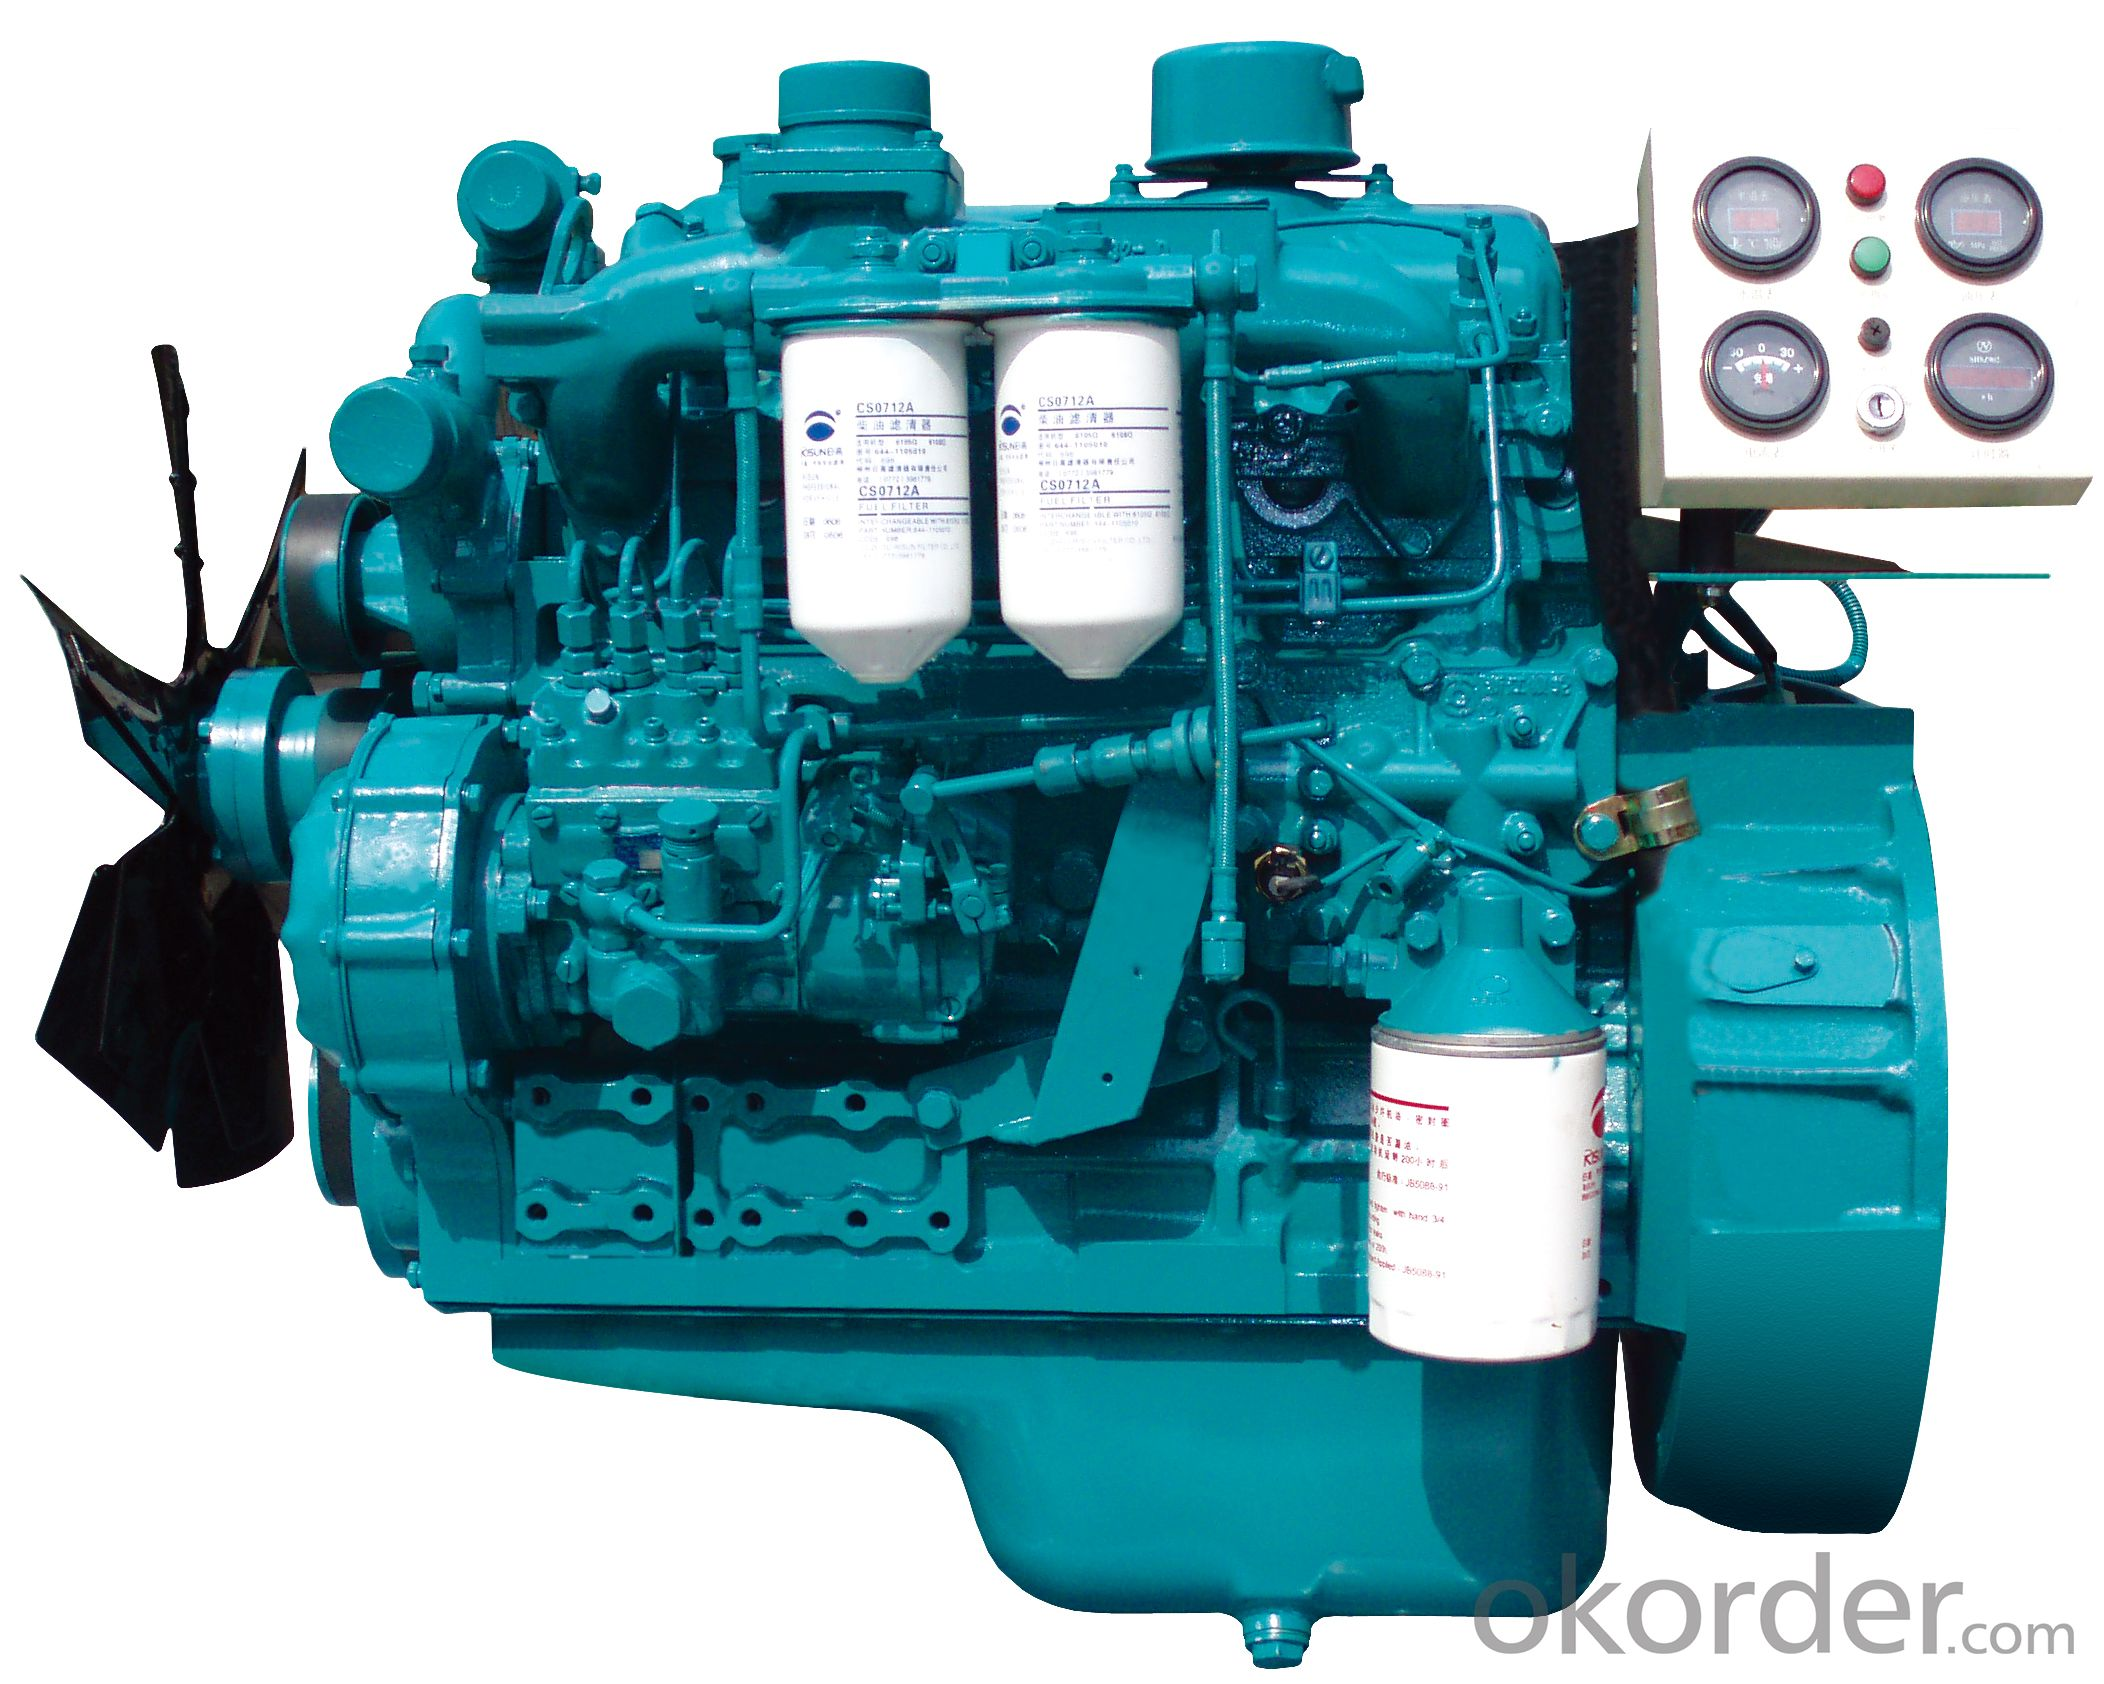 Yuchai YC4A/4D (24-64kW) Series Engines for Generators